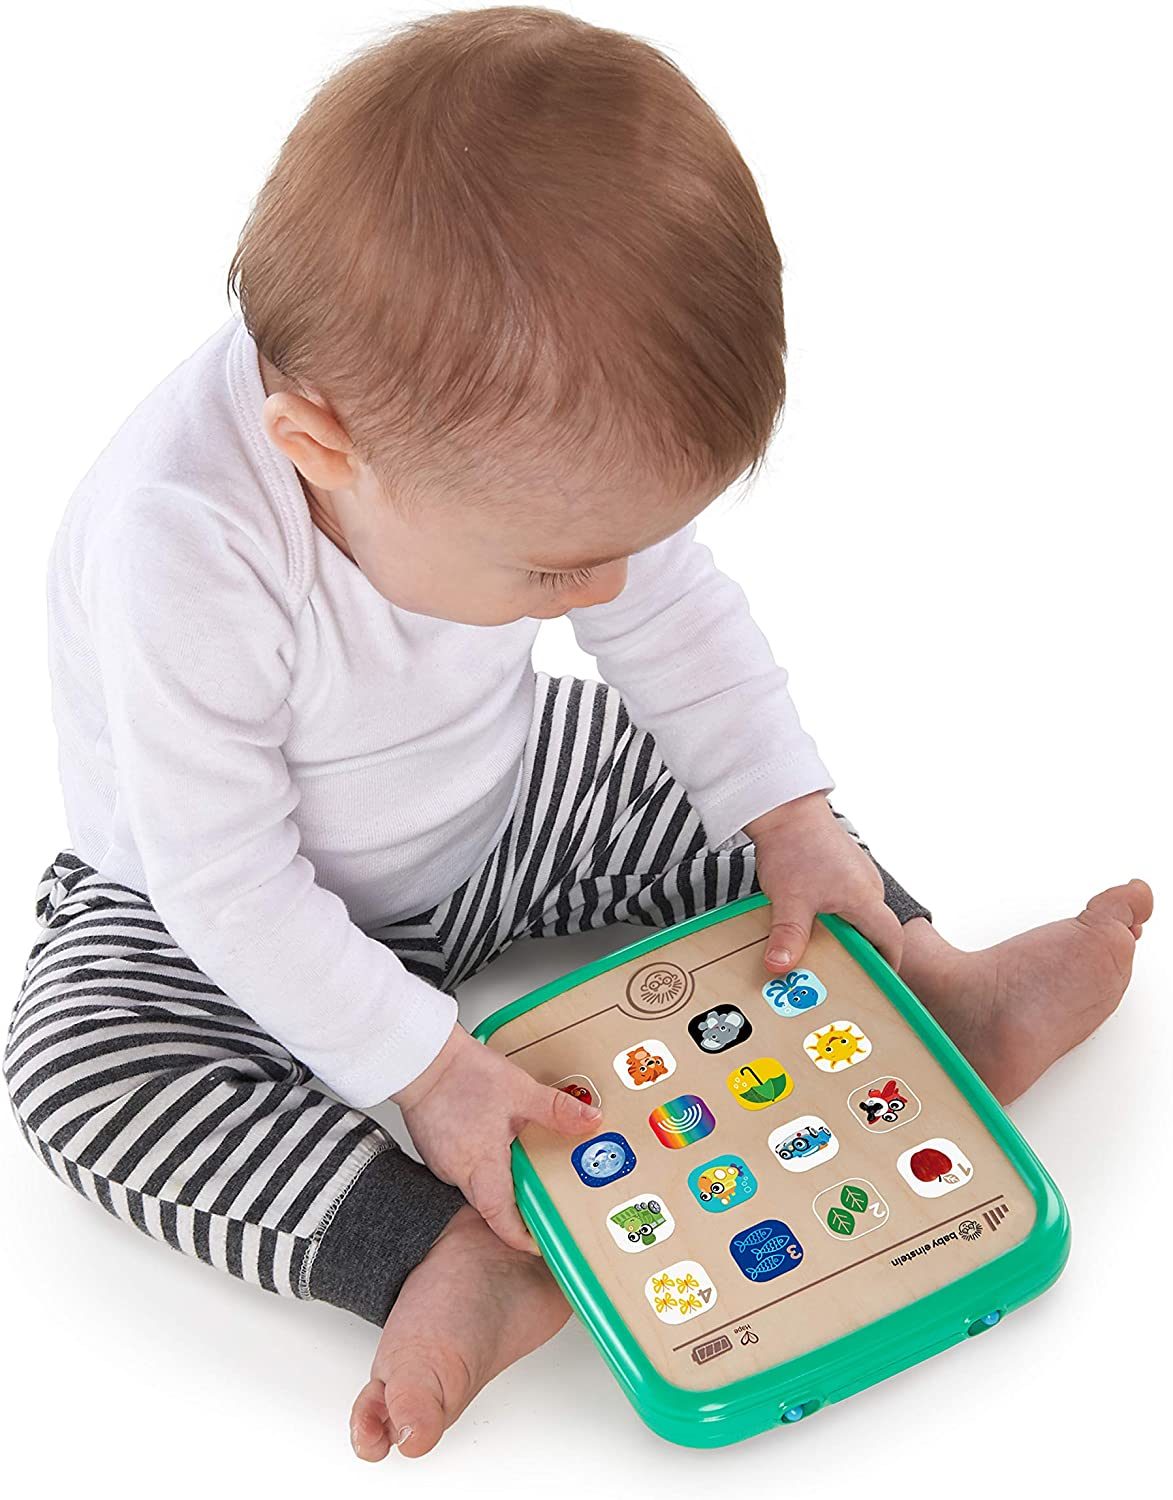 Magic touch tablet -